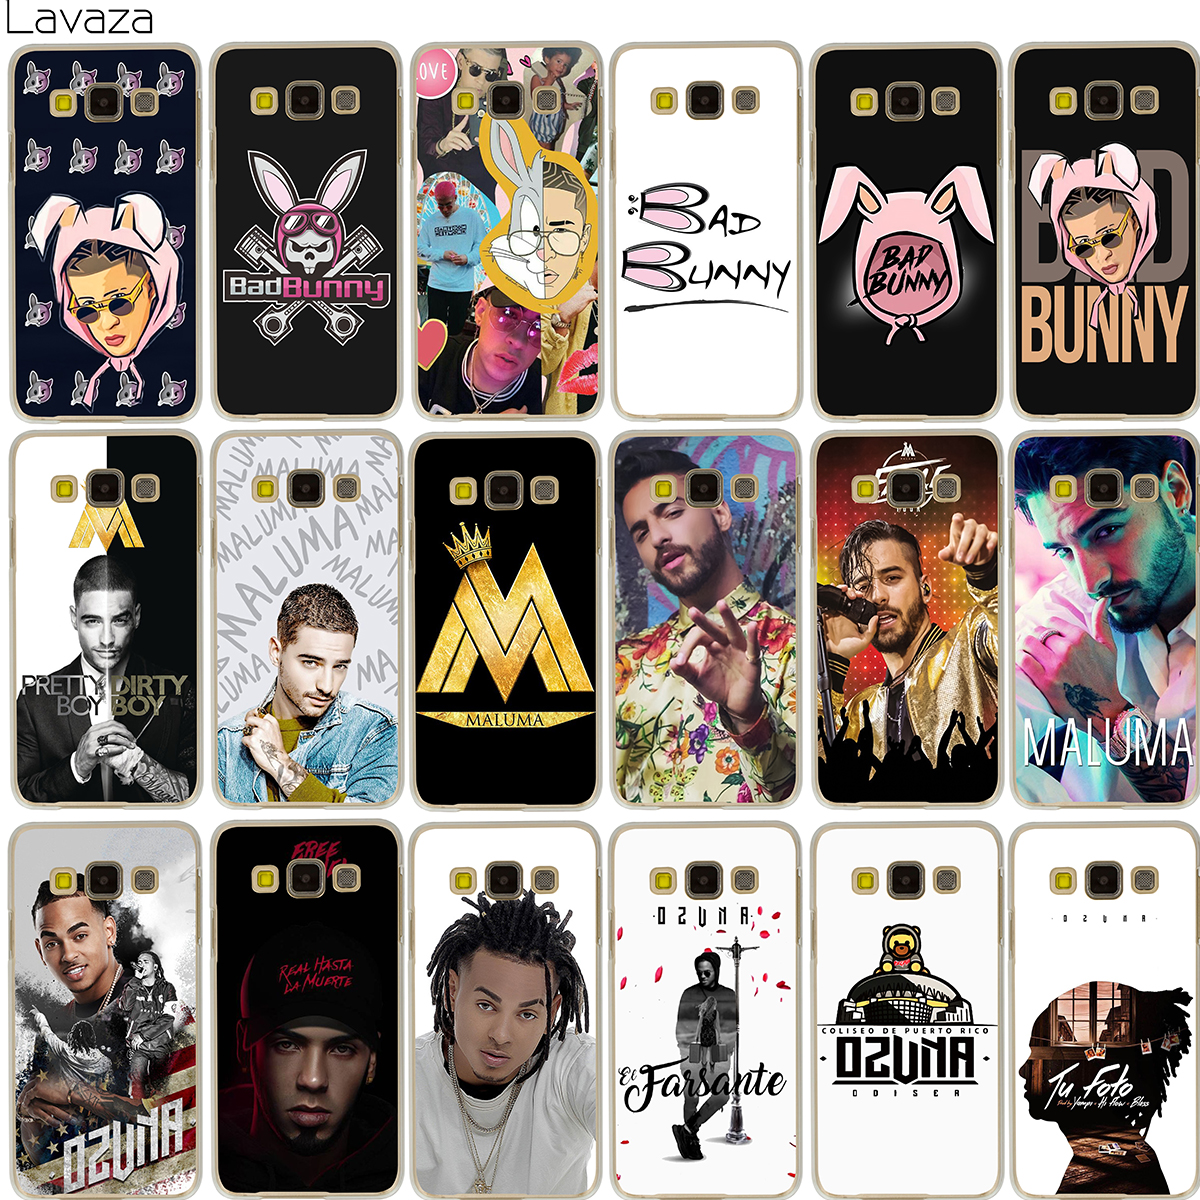 Lavaza Bad Bunny Maluma Ozuna POP Hip Hop Rapper Case for Samsung Galaxy Note 8 A3 A5 A8 J3 J5 J7 2016 2017 2018 ...